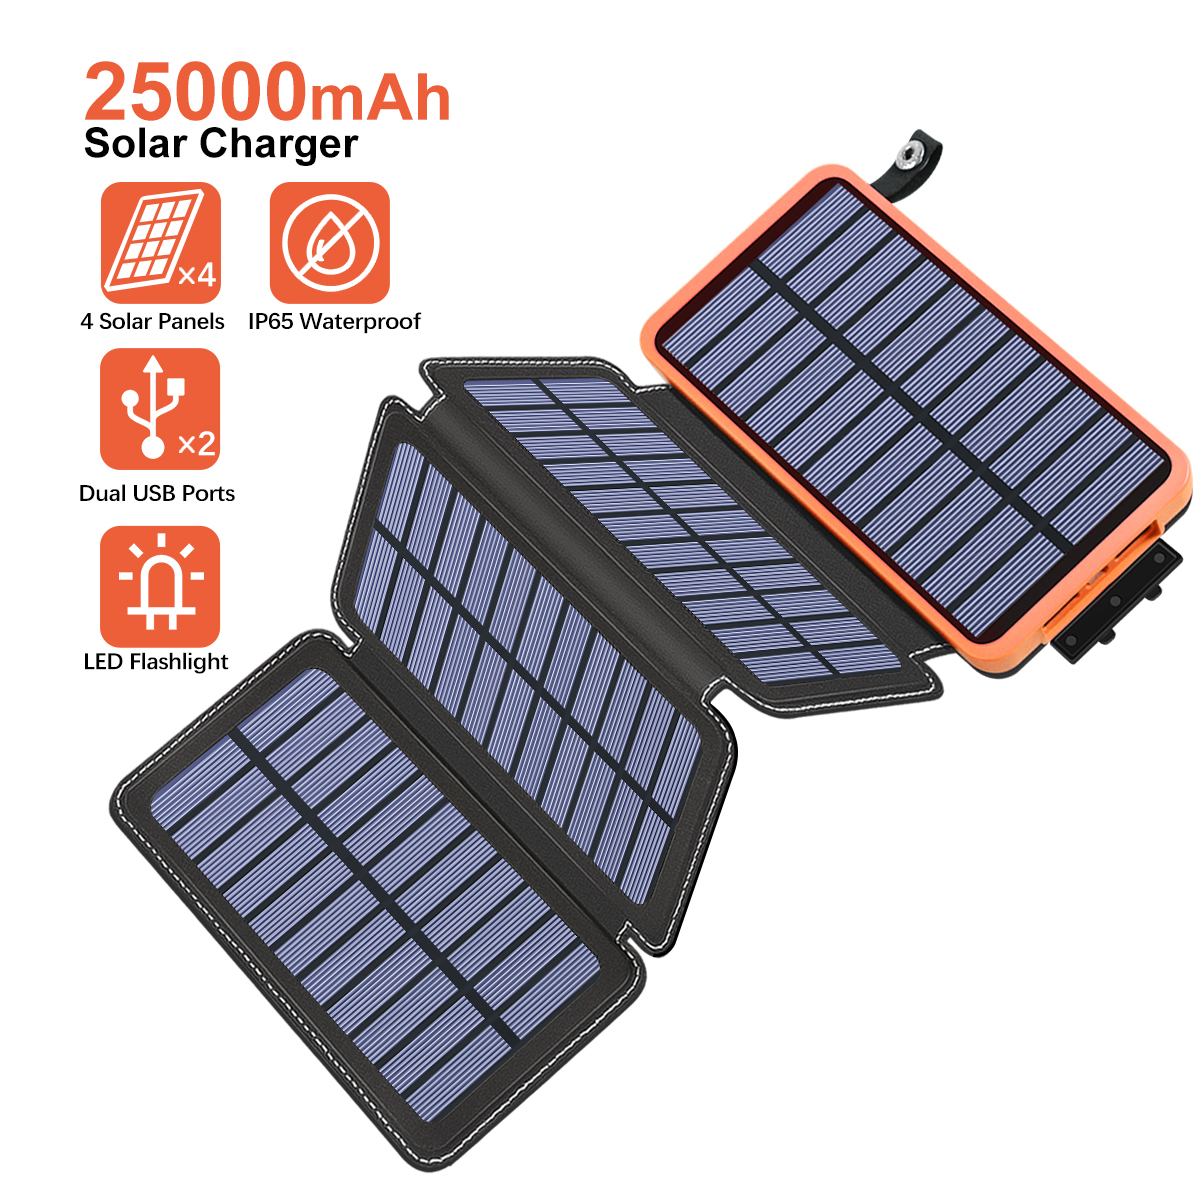 Solar Charger 25000mAh Portable Power Bank with 4 Solar Panels 6W Power Phone Charger for Smart Phones, Tablets and Outdoor Waterproof